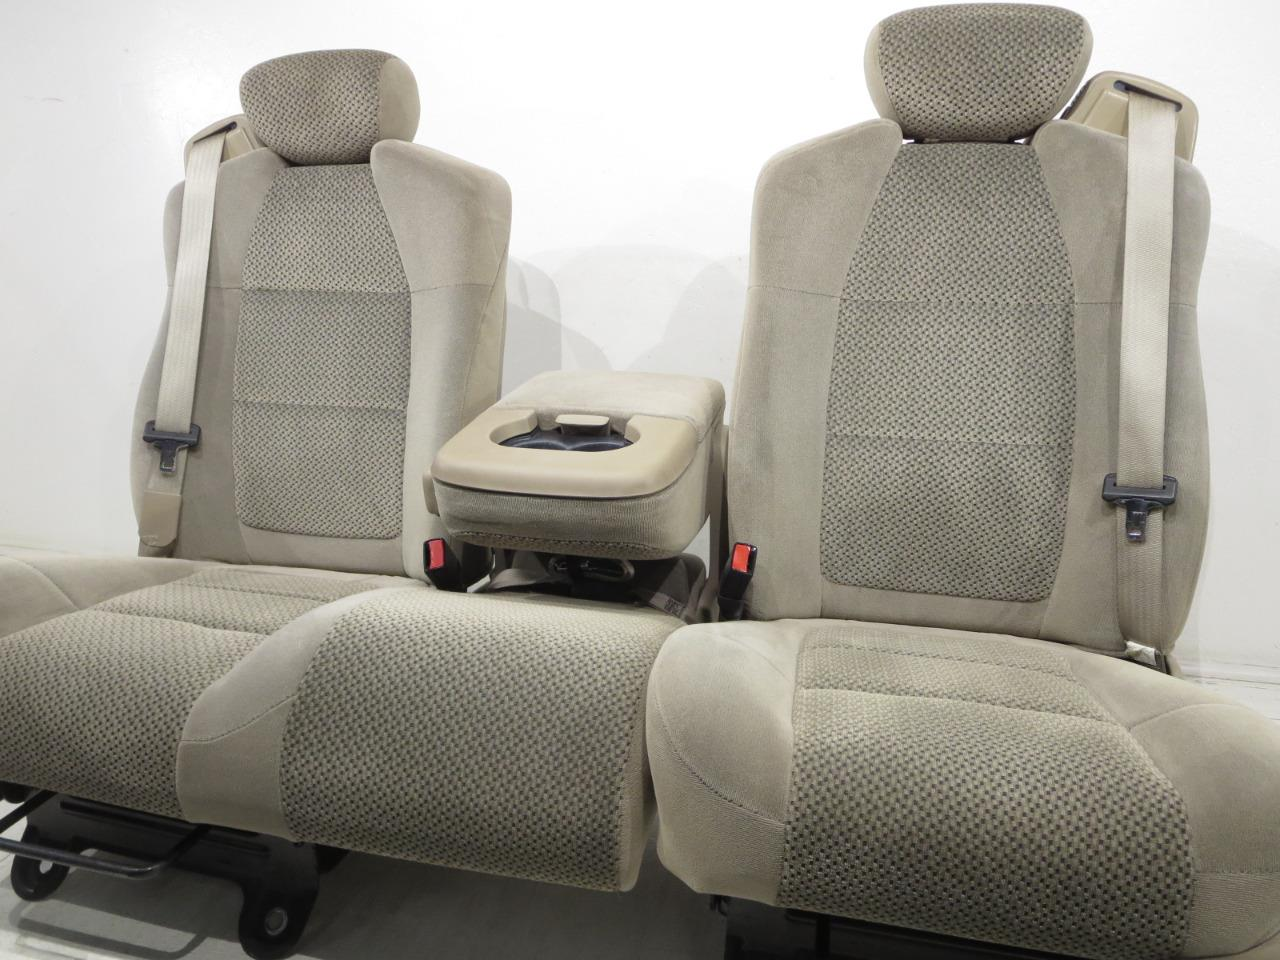 Marvelous Ford F150 F 150 Oem 60 40 Tan Cloth Seats Extended Cab Supercab 2001 2002 2003 Pabps2019 Chair Design Images Pabps2019Com